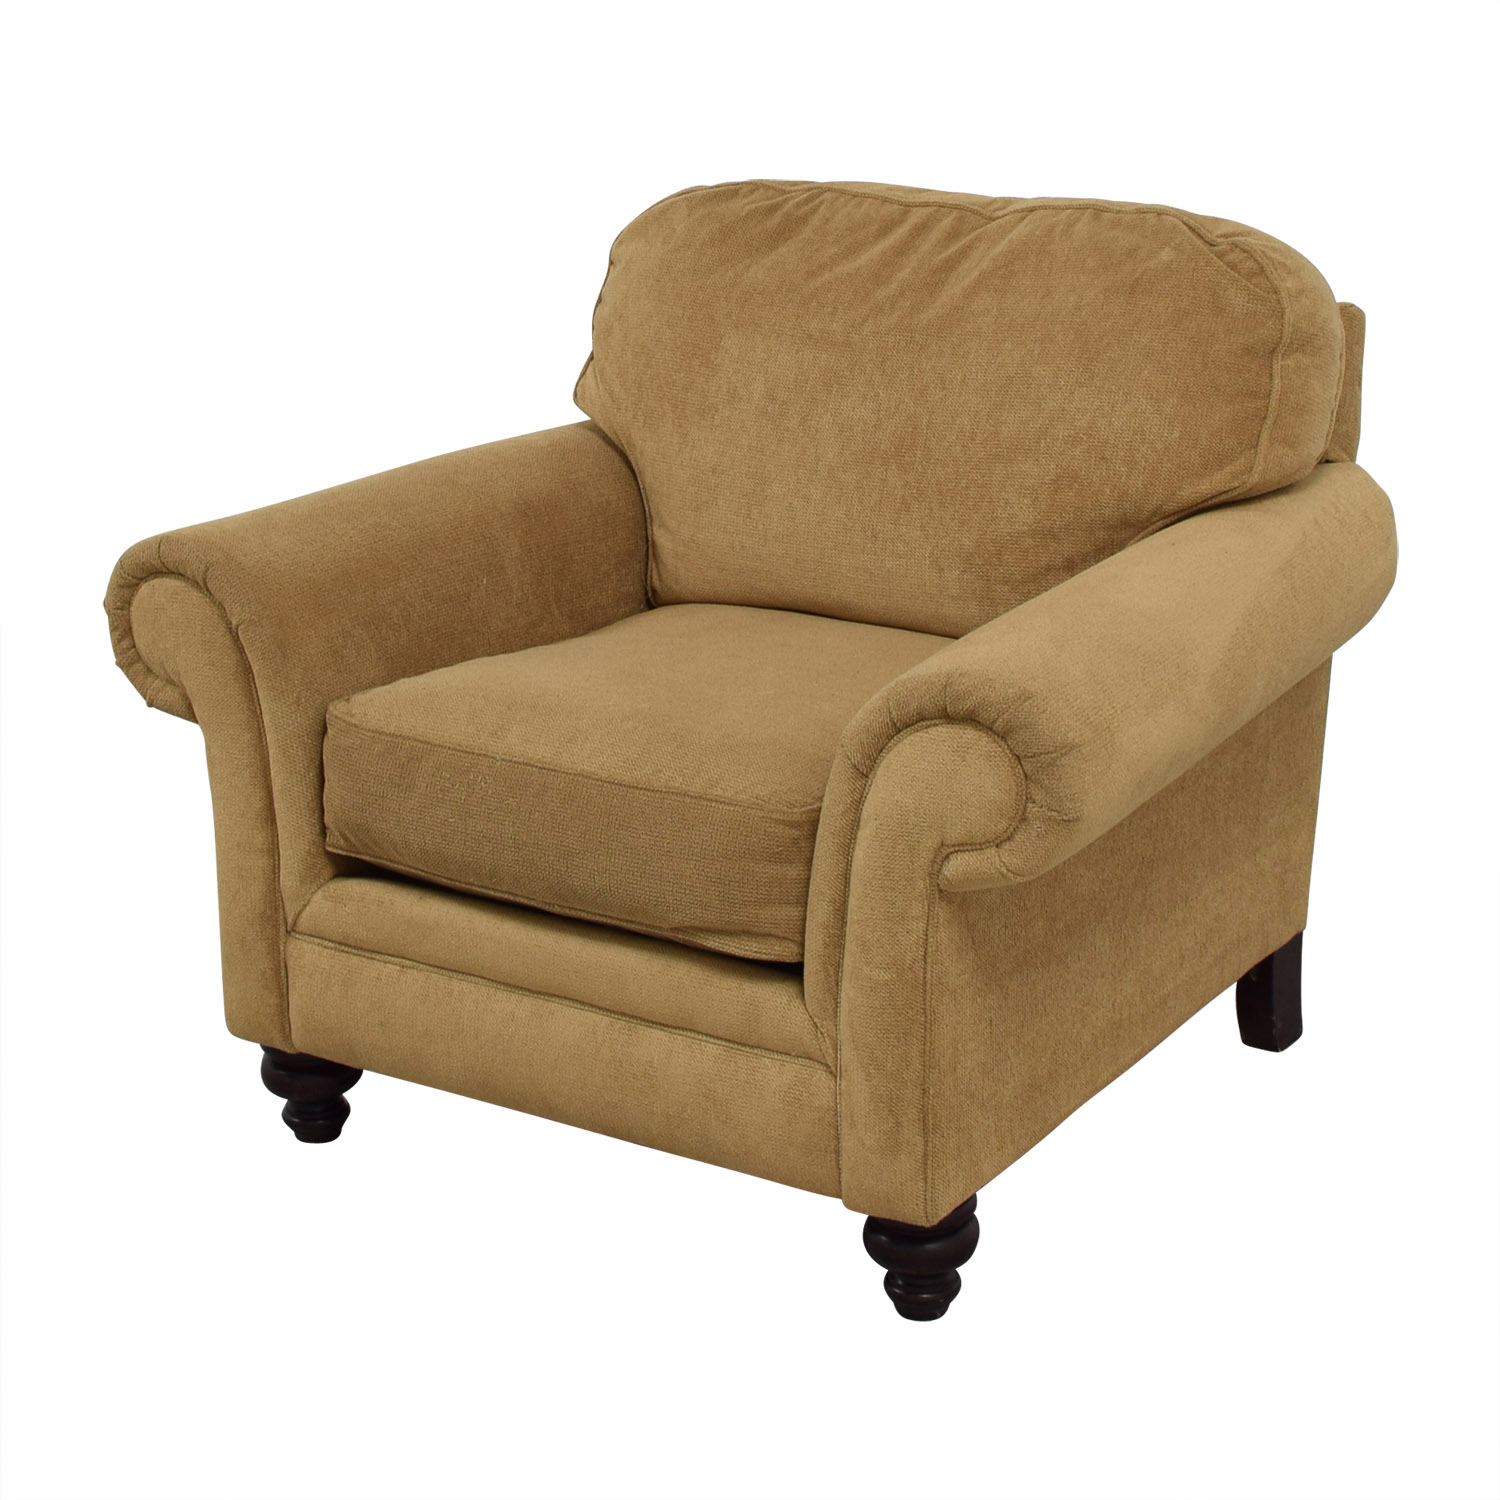 Mustard Accent Chair 86 Off Broyhill Broyhill Mustard Yellow Accent Chair